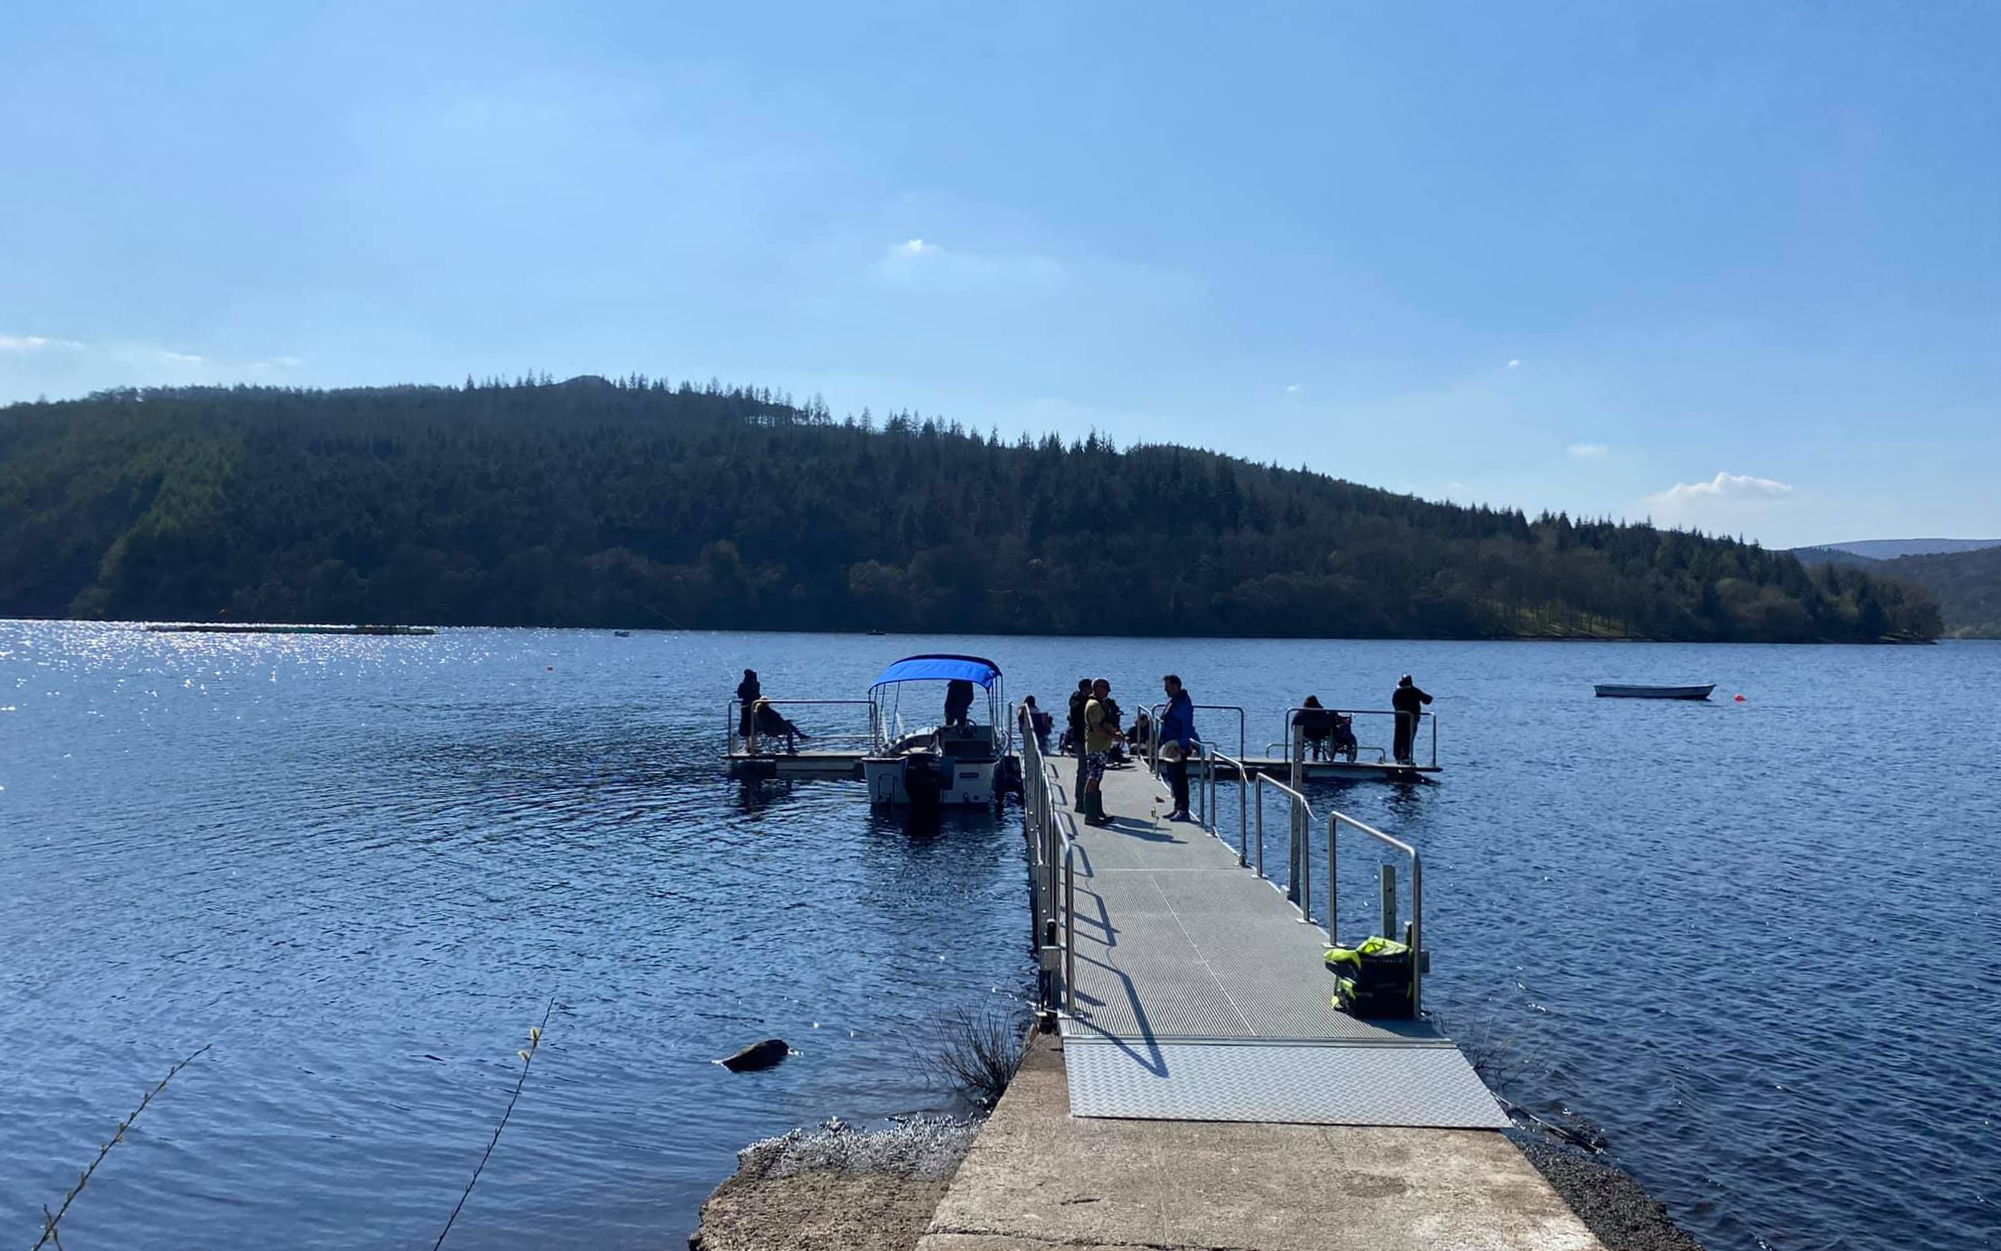 The accessible fishing pontoon on Ladybower Reservoir is surrounded by beautiful hills and trees.